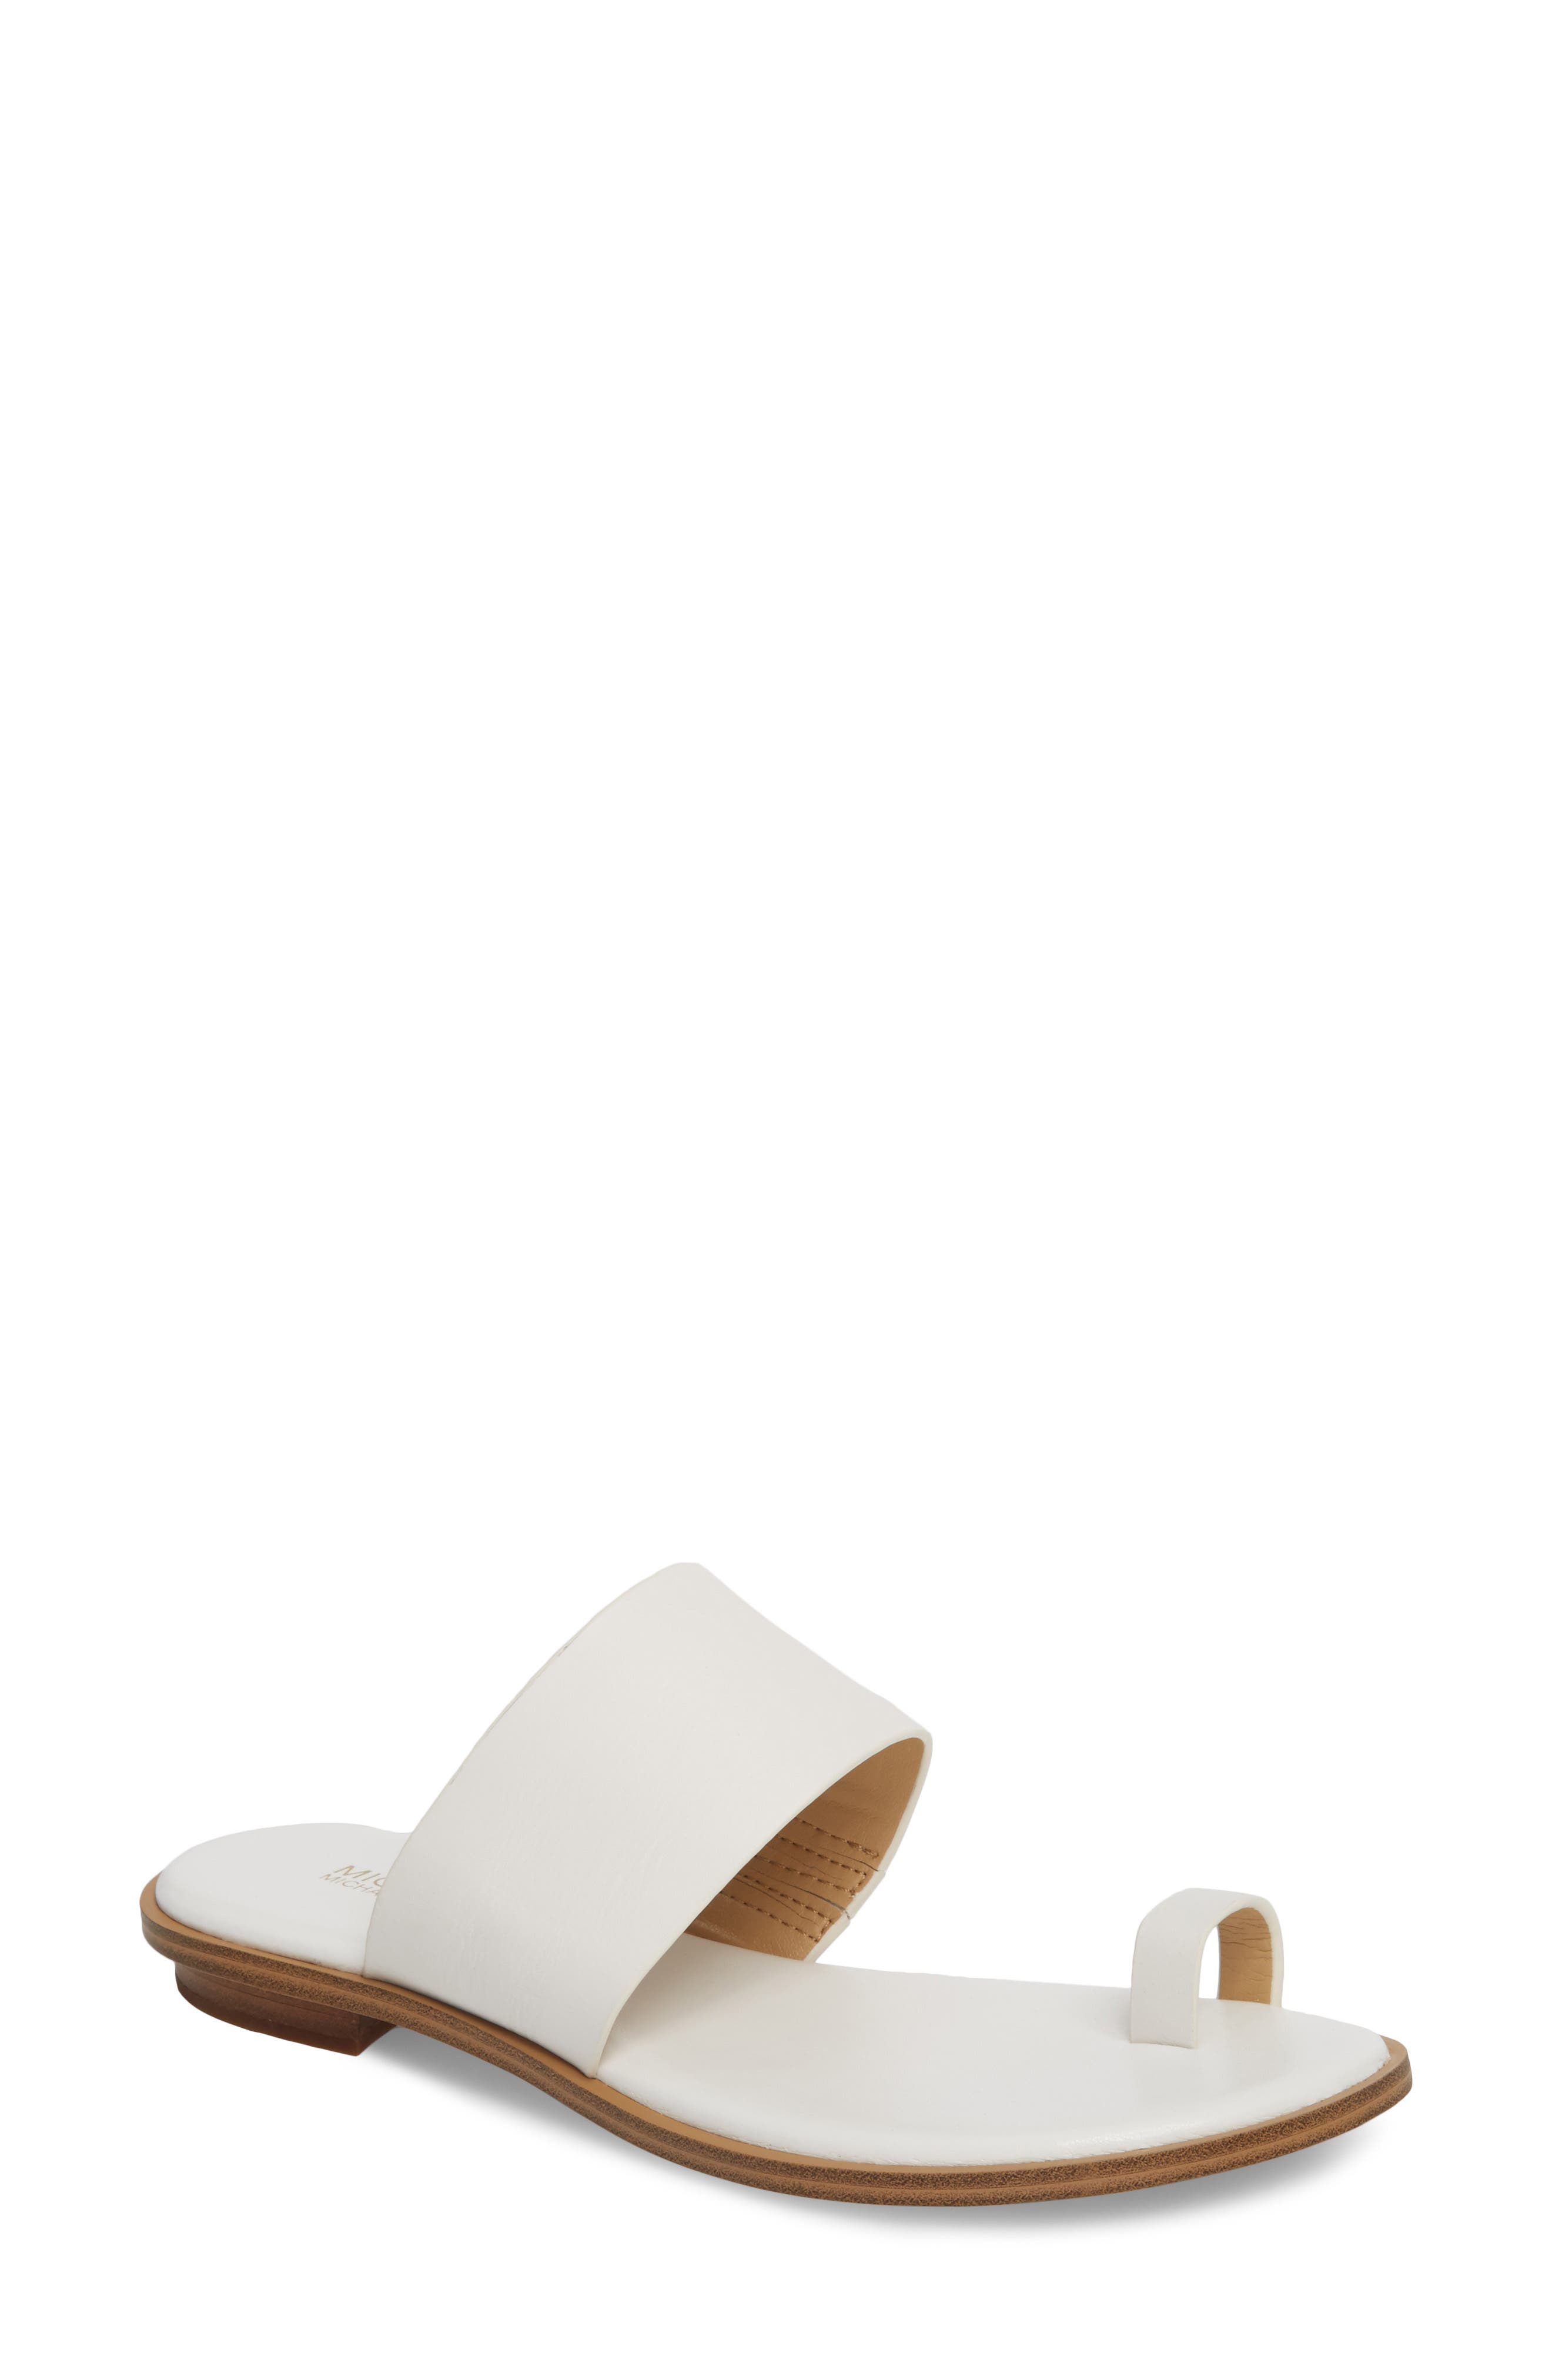 Sonya Sandal,                         Main,                         color, Optic White Leather